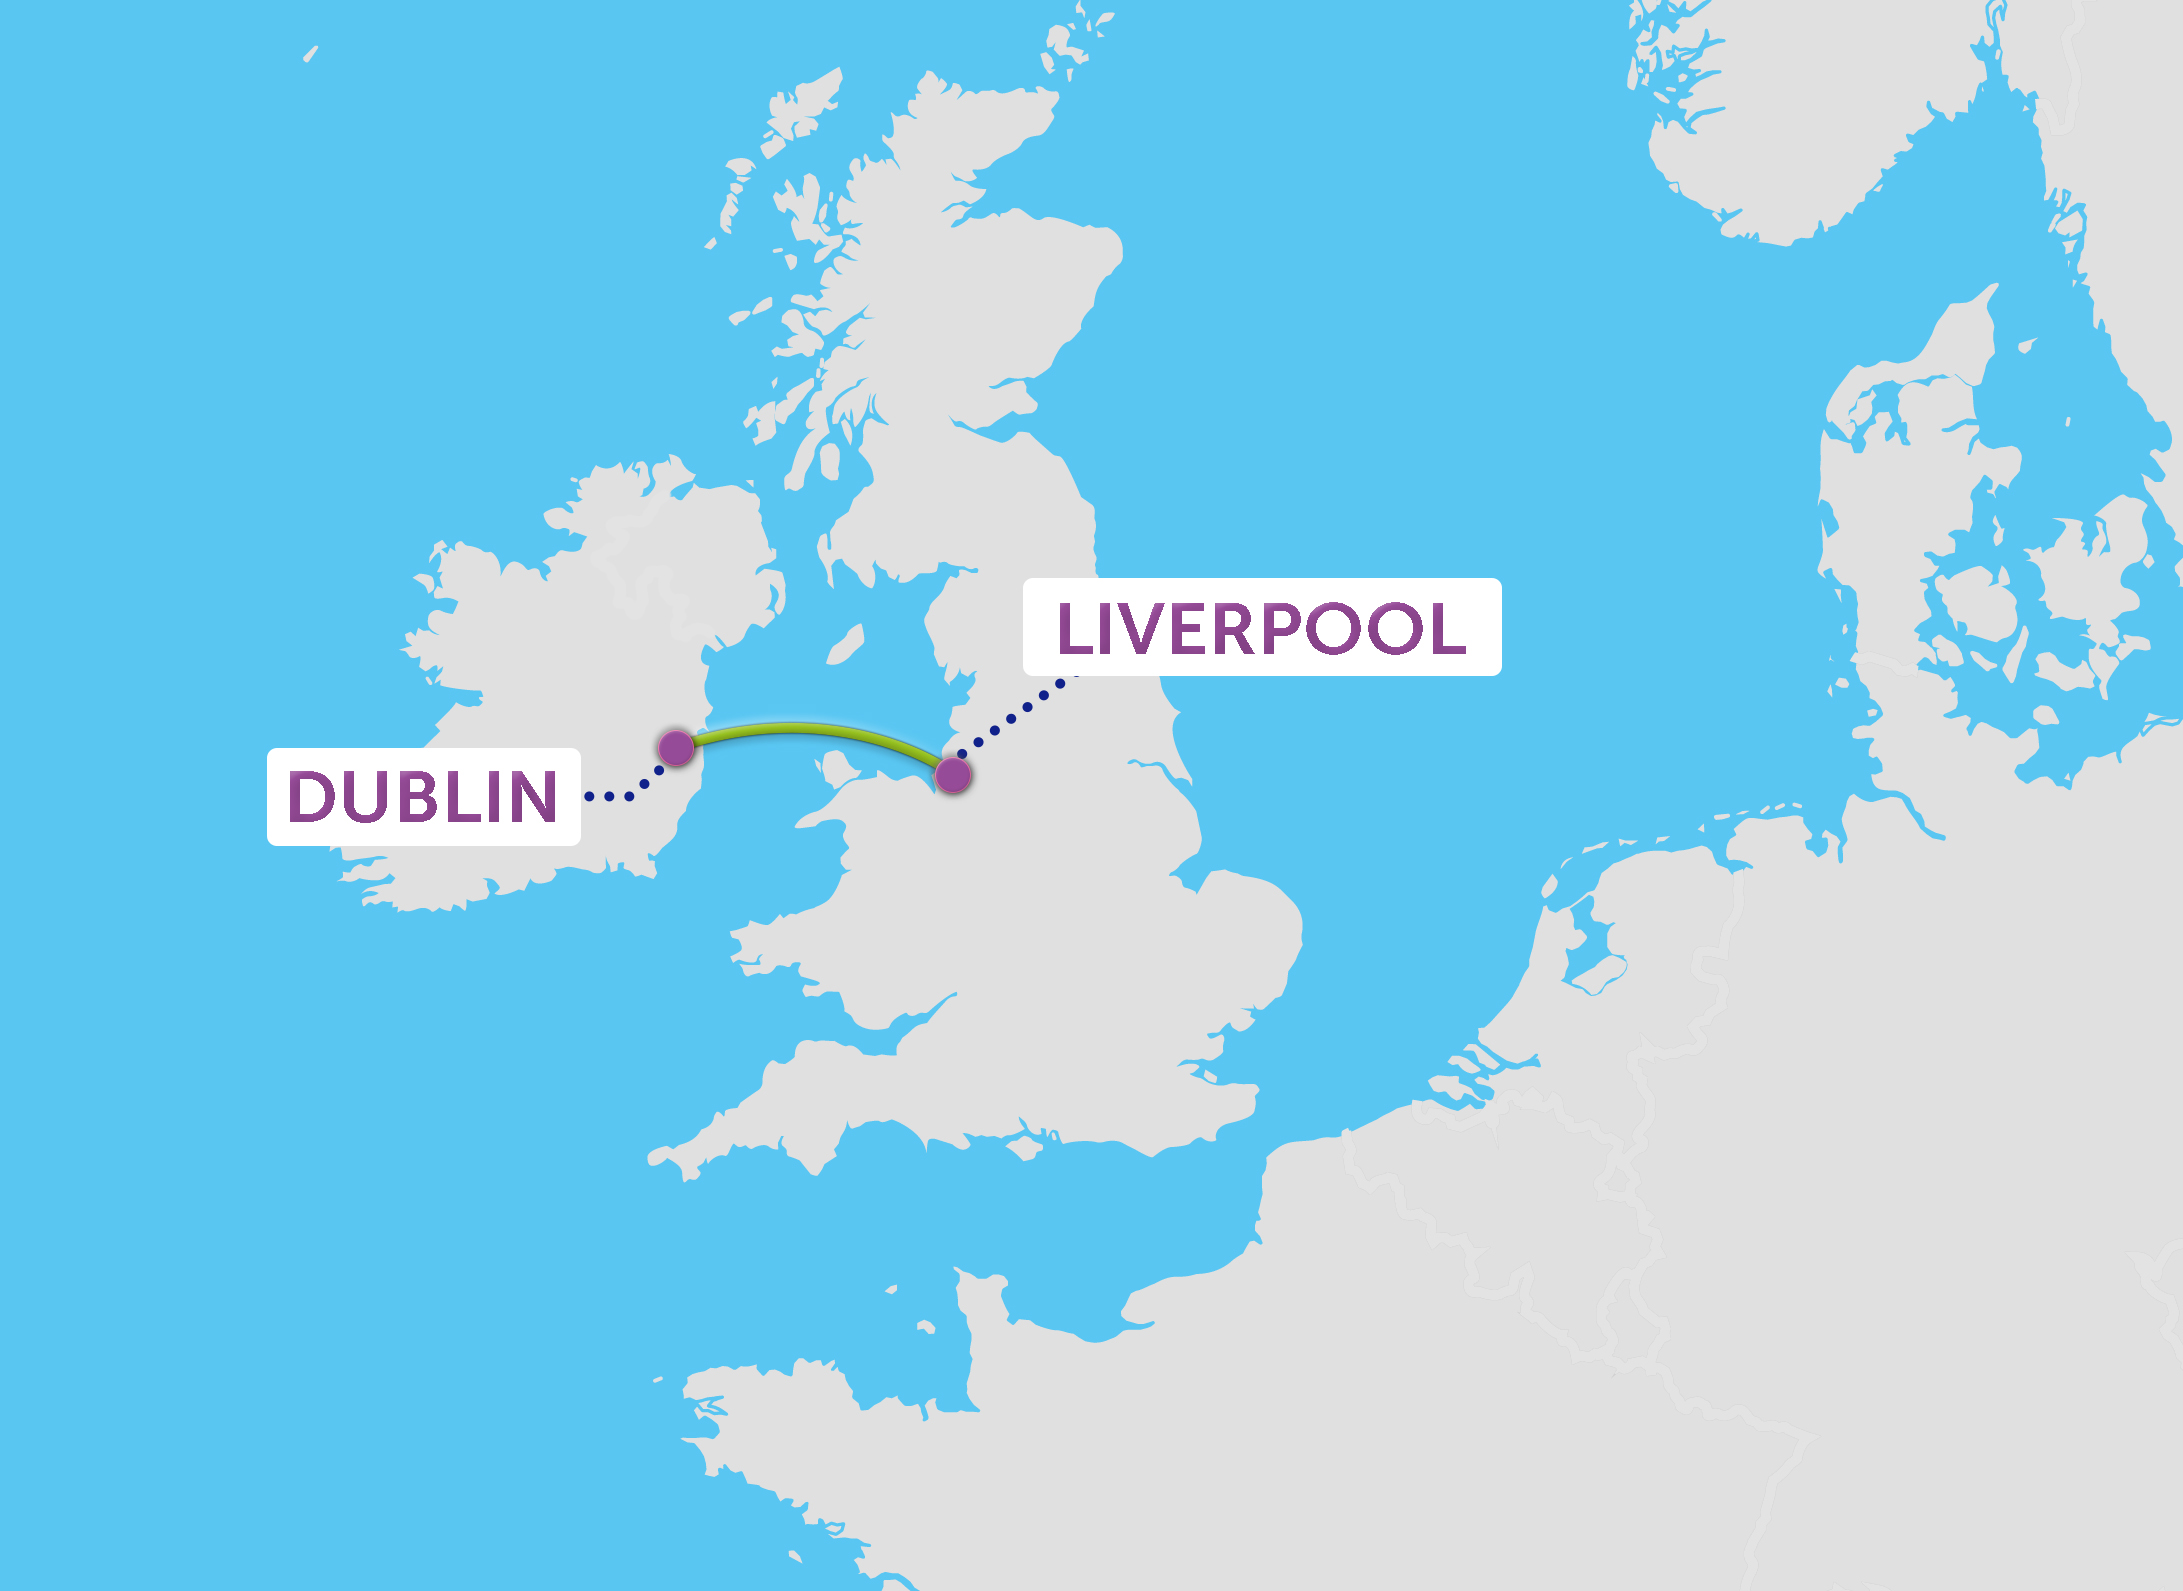 P&O Ferries Liverpool to Dublin route